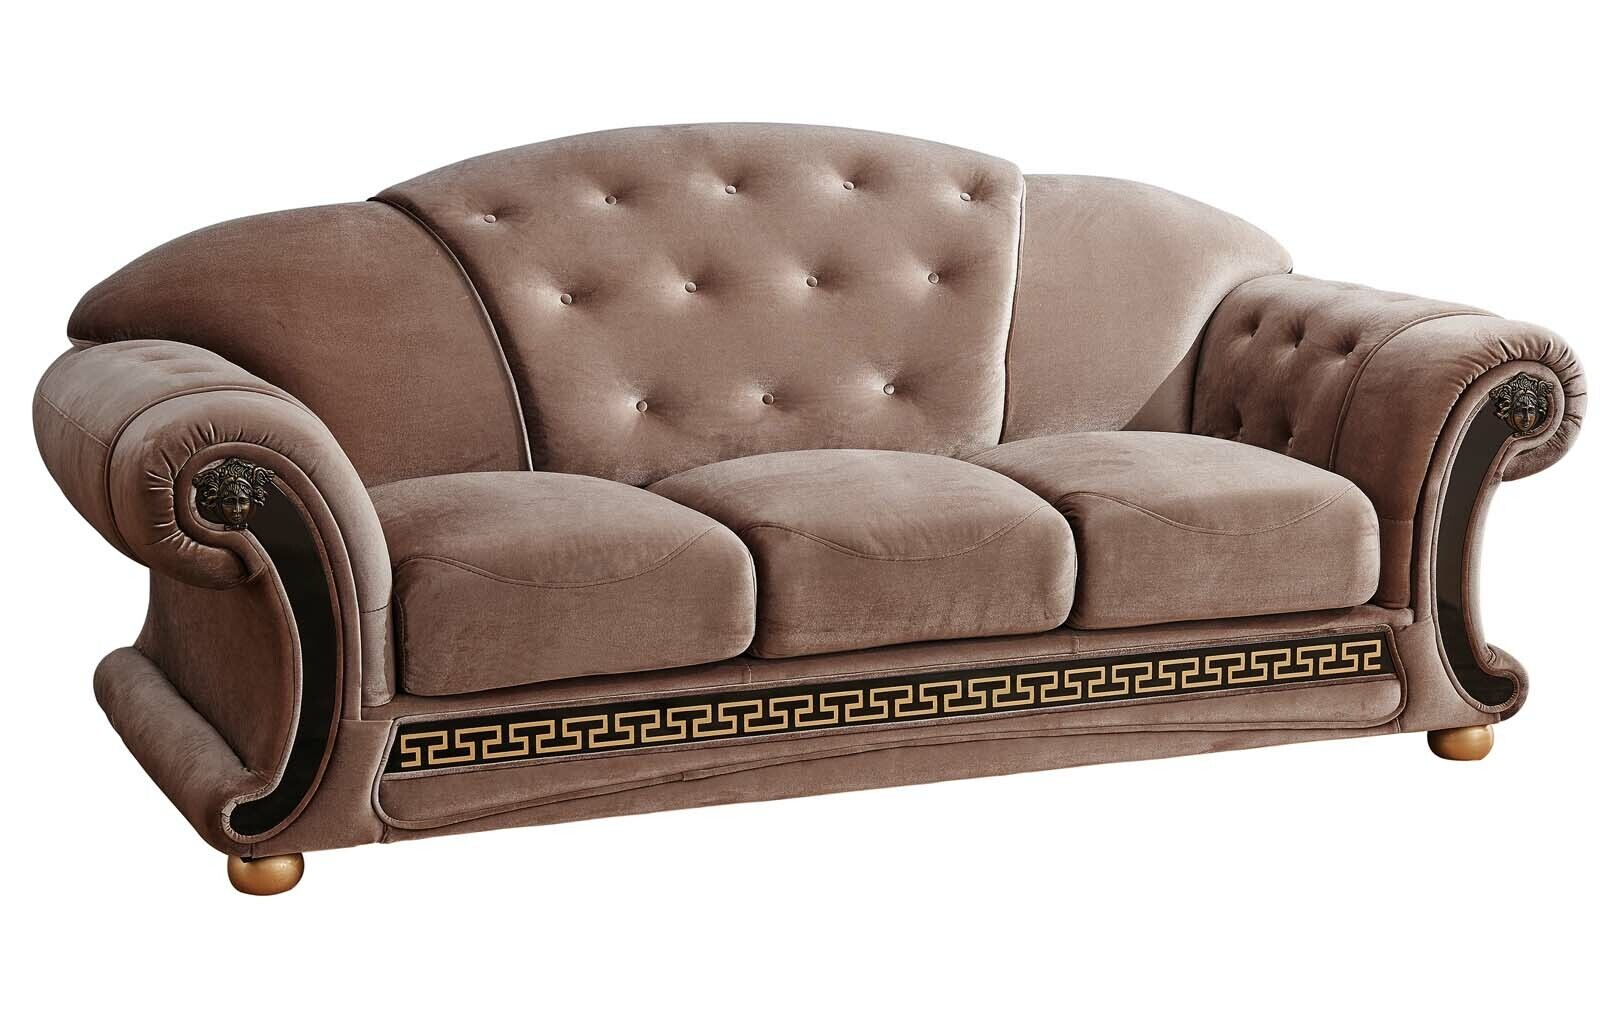 Details about Button Tufted Light Brown Fabric Sofa Black & Gold Accents  Living Room Couch